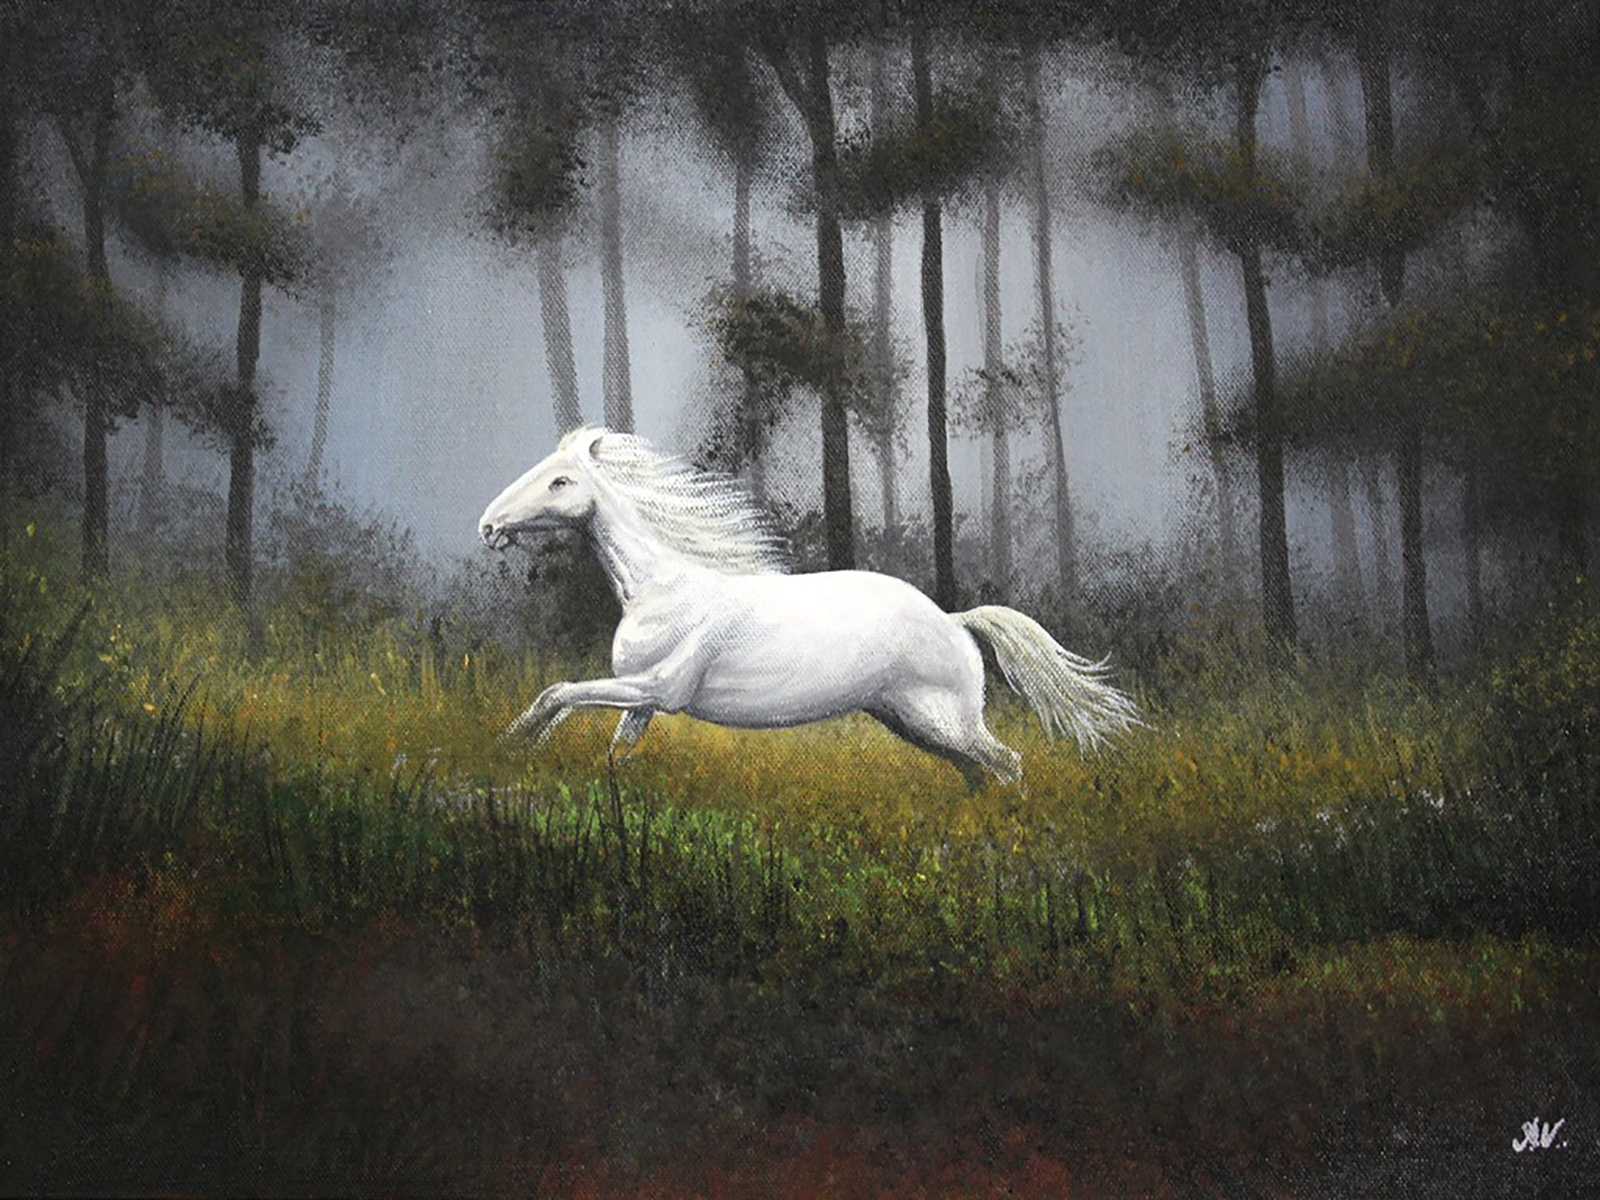 The White Stallion 13051